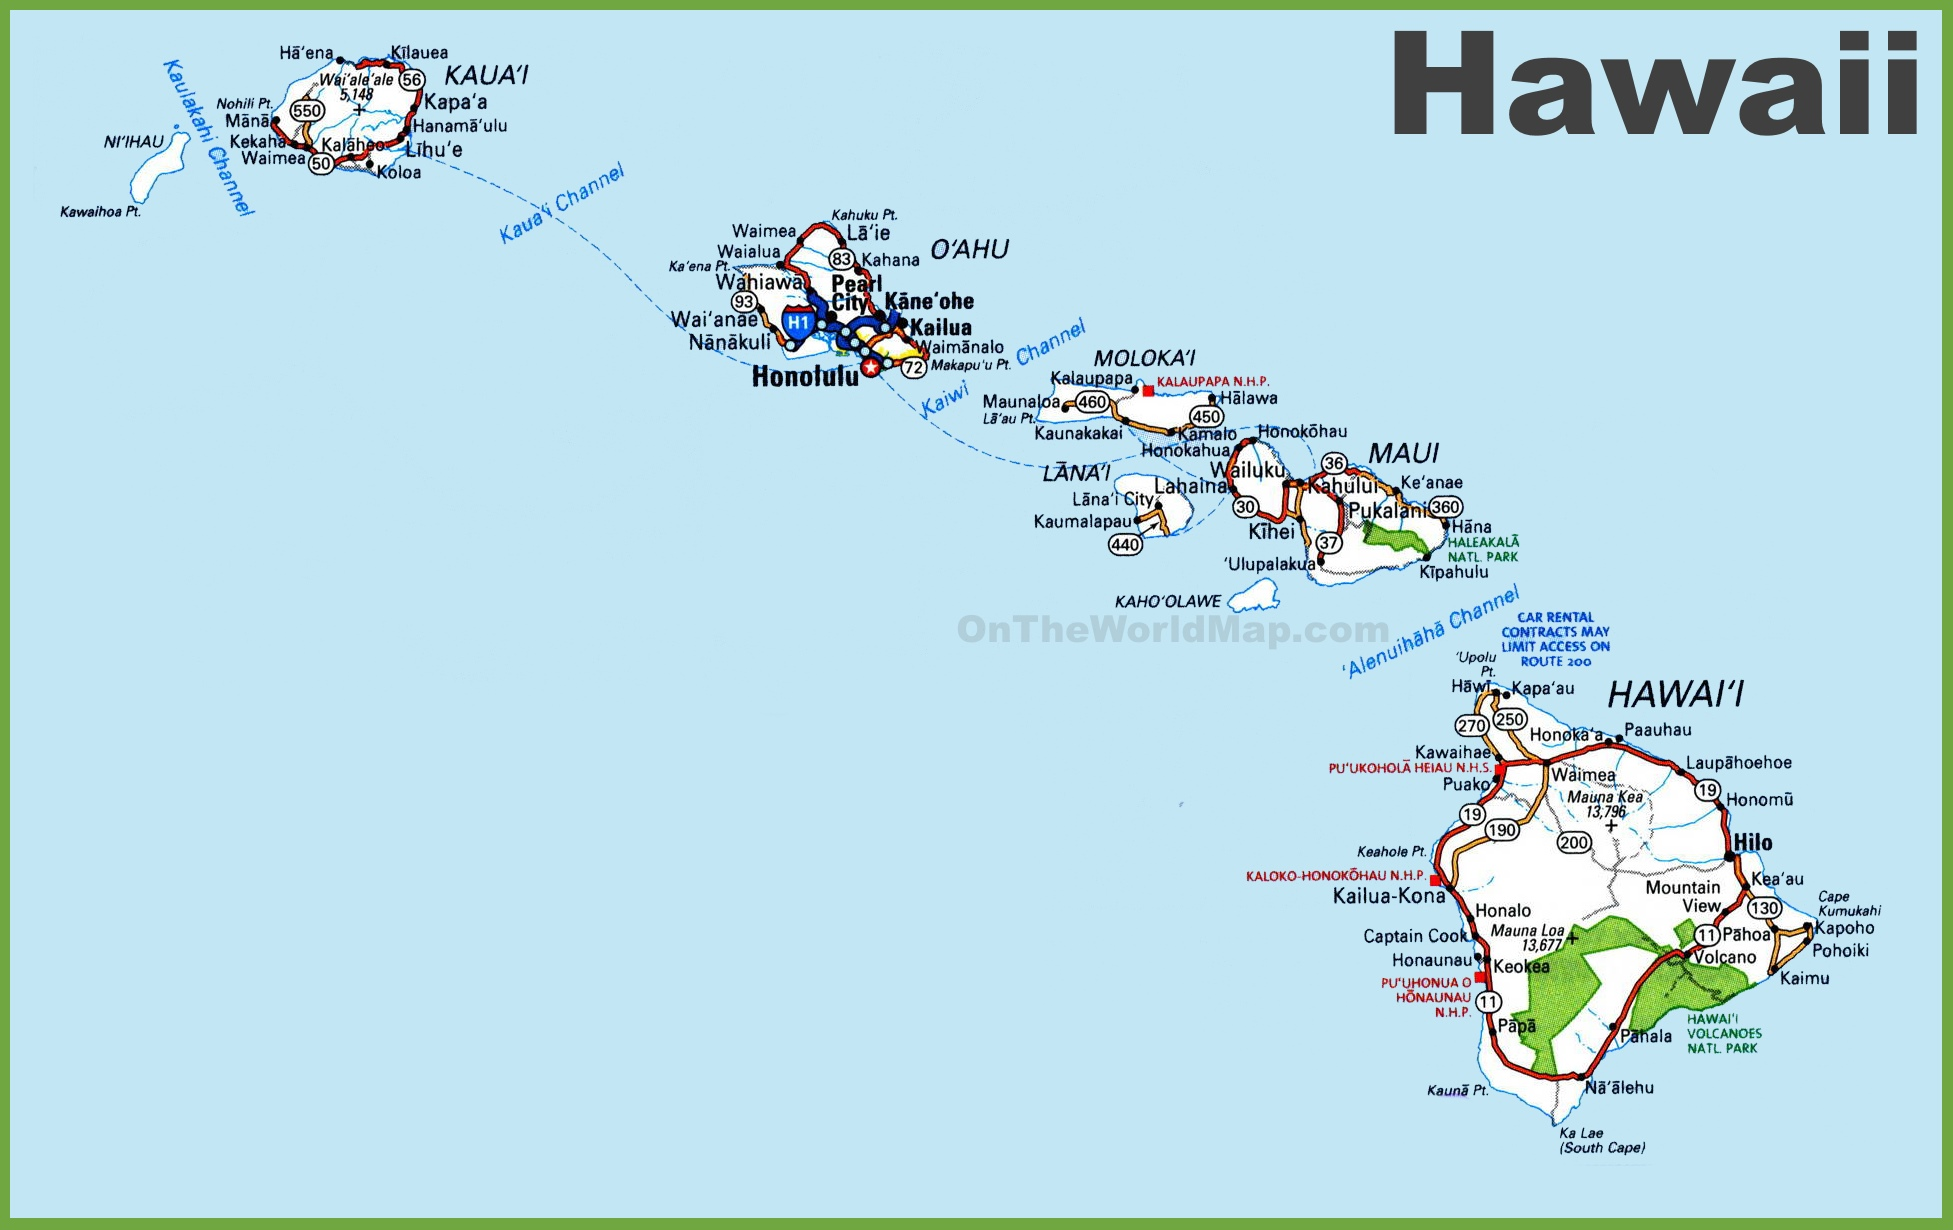 Hawaii State Maps USA Maps Of Hawaii Hawaiian Islands - Hawaii map usa states